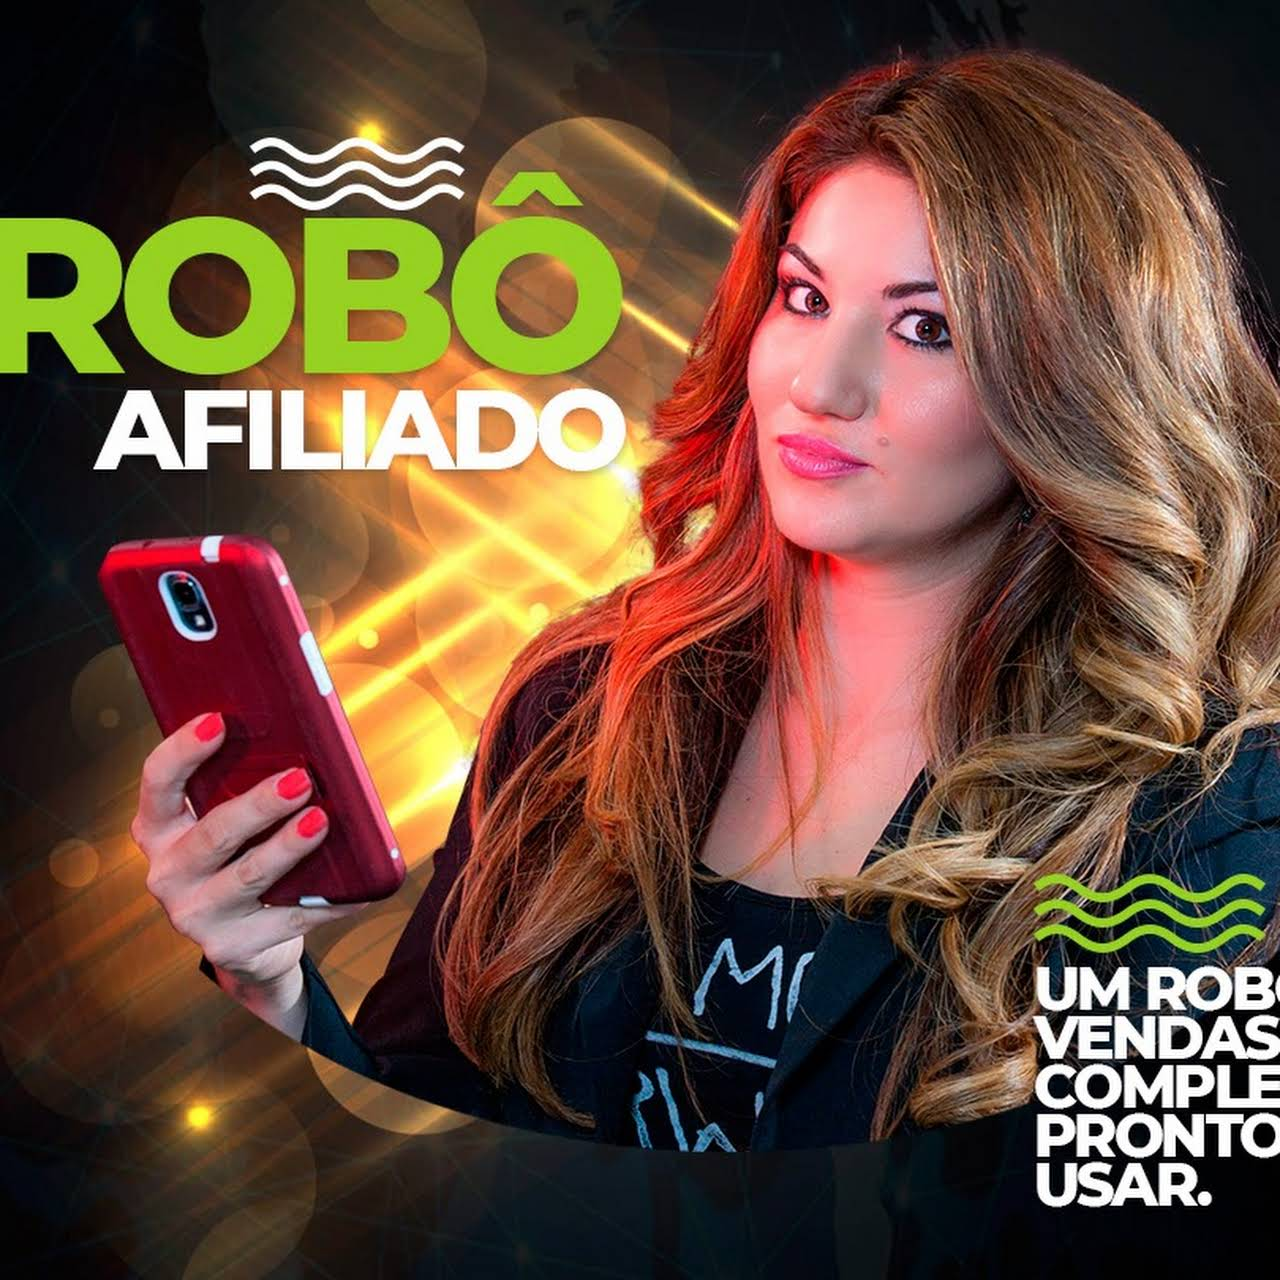 robô afiliado 2020 download